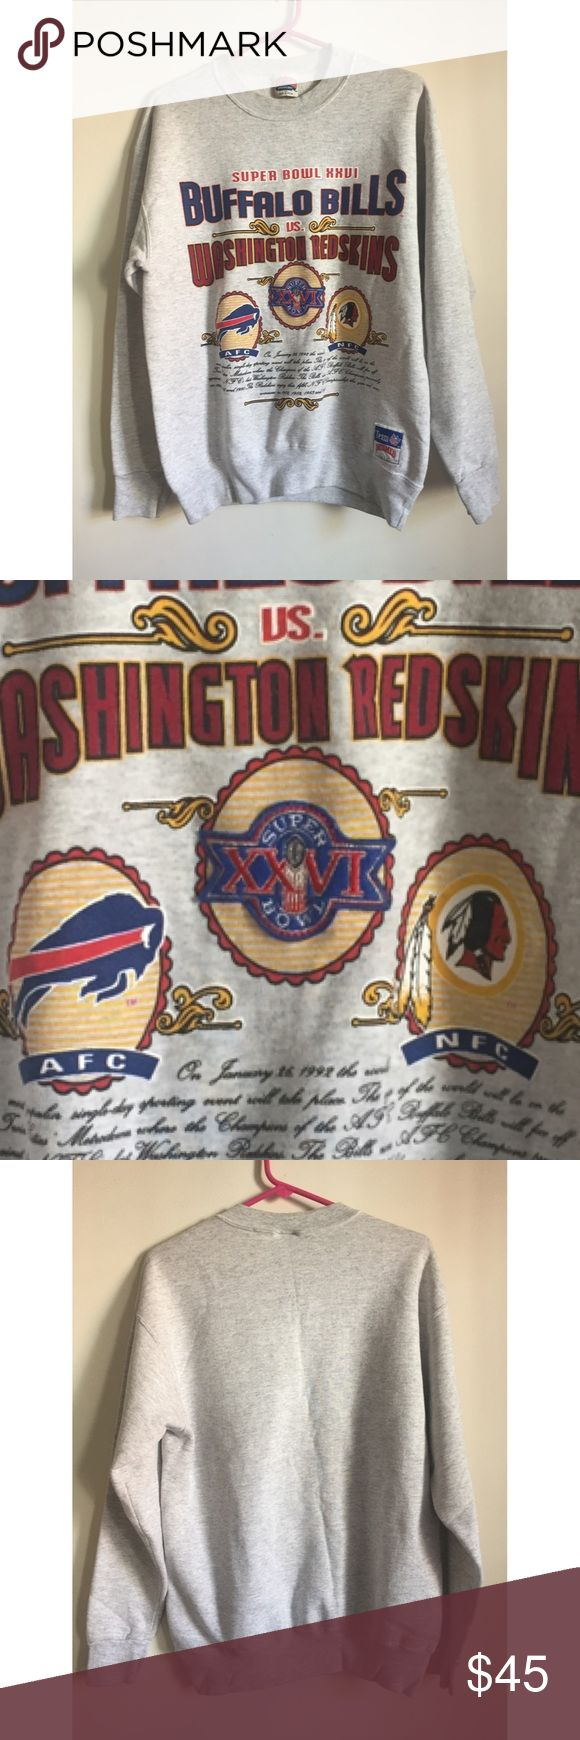 Official NFL 1992 Super Bowl Memorabilia-Redskins Super Bowl XXVI was an American football game between the National Football Conference champion Washington Redskins and the American Football Conference champion Buffalo Bills to decide the National Football League champion for the 1991 season... Champion Redskins  Sweatshirt in Fantastic Condition and Embroidery in Super Bowl Ring is Amazing Authentic Original Vintage Style Sweaters Crewneck